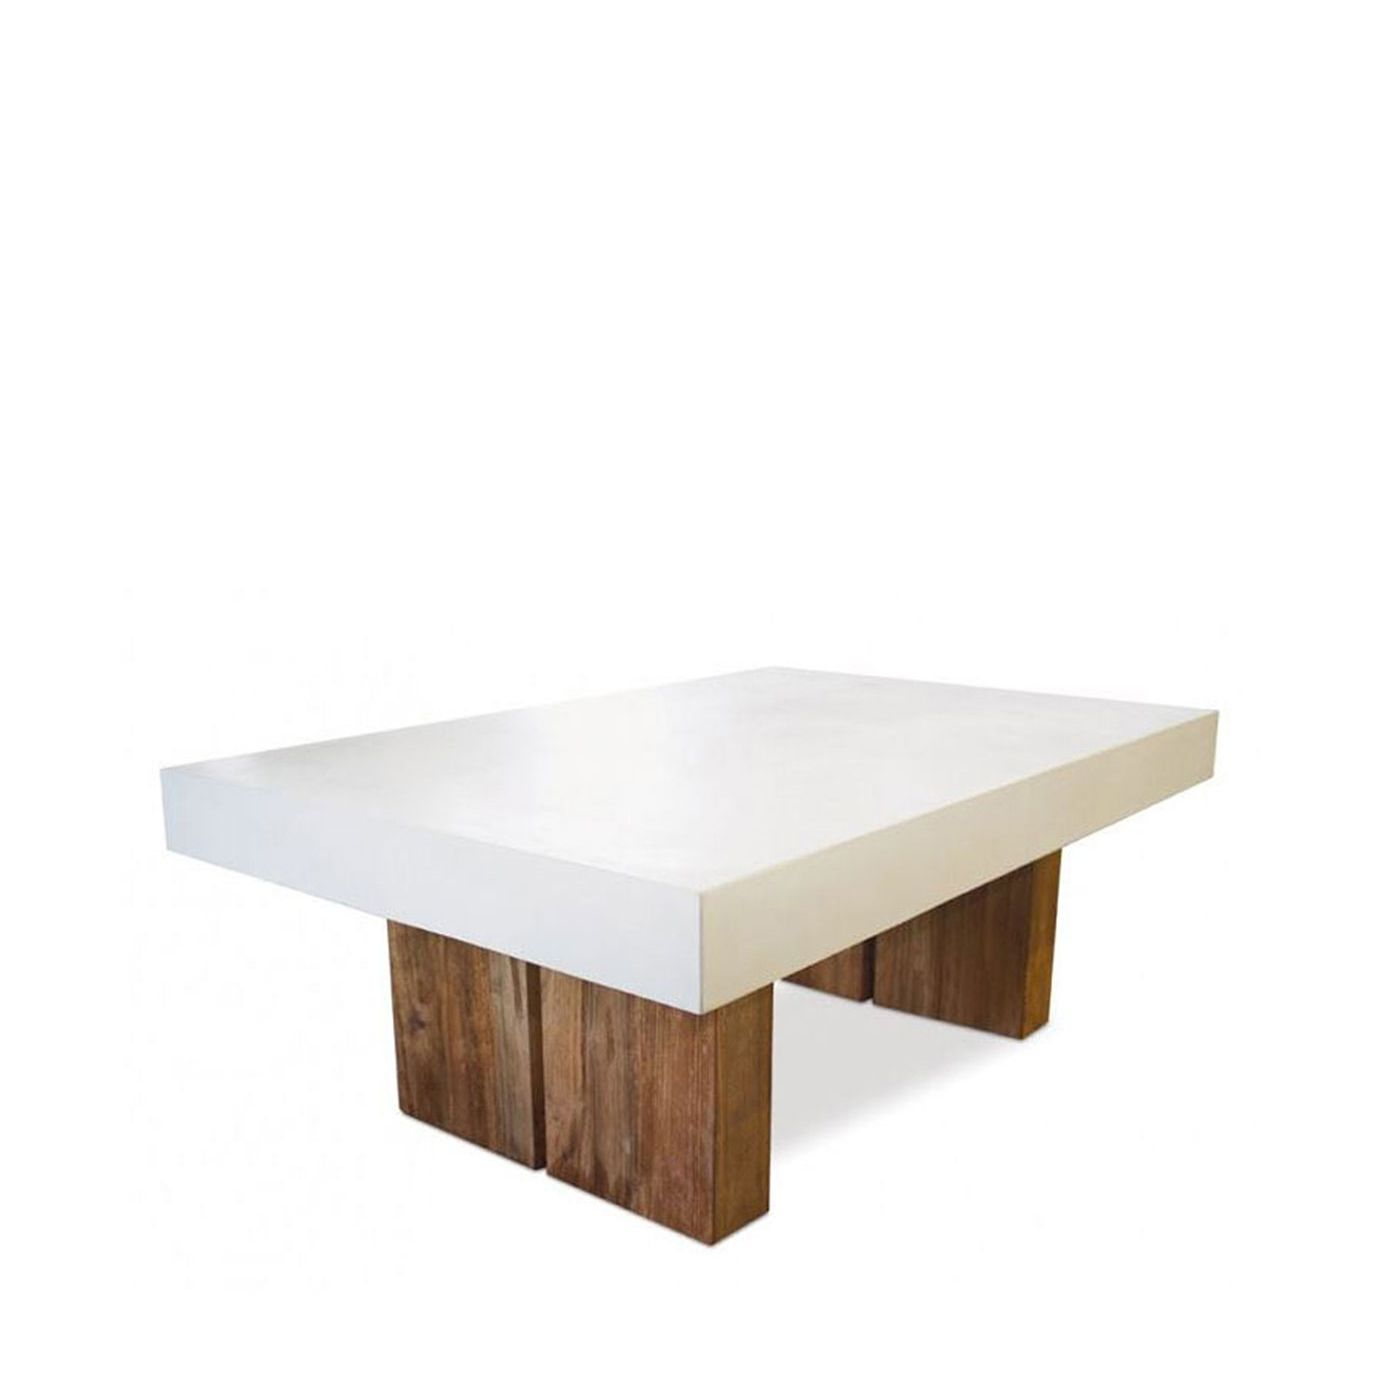 Reclaimed Teak and Concrete top coffee table white